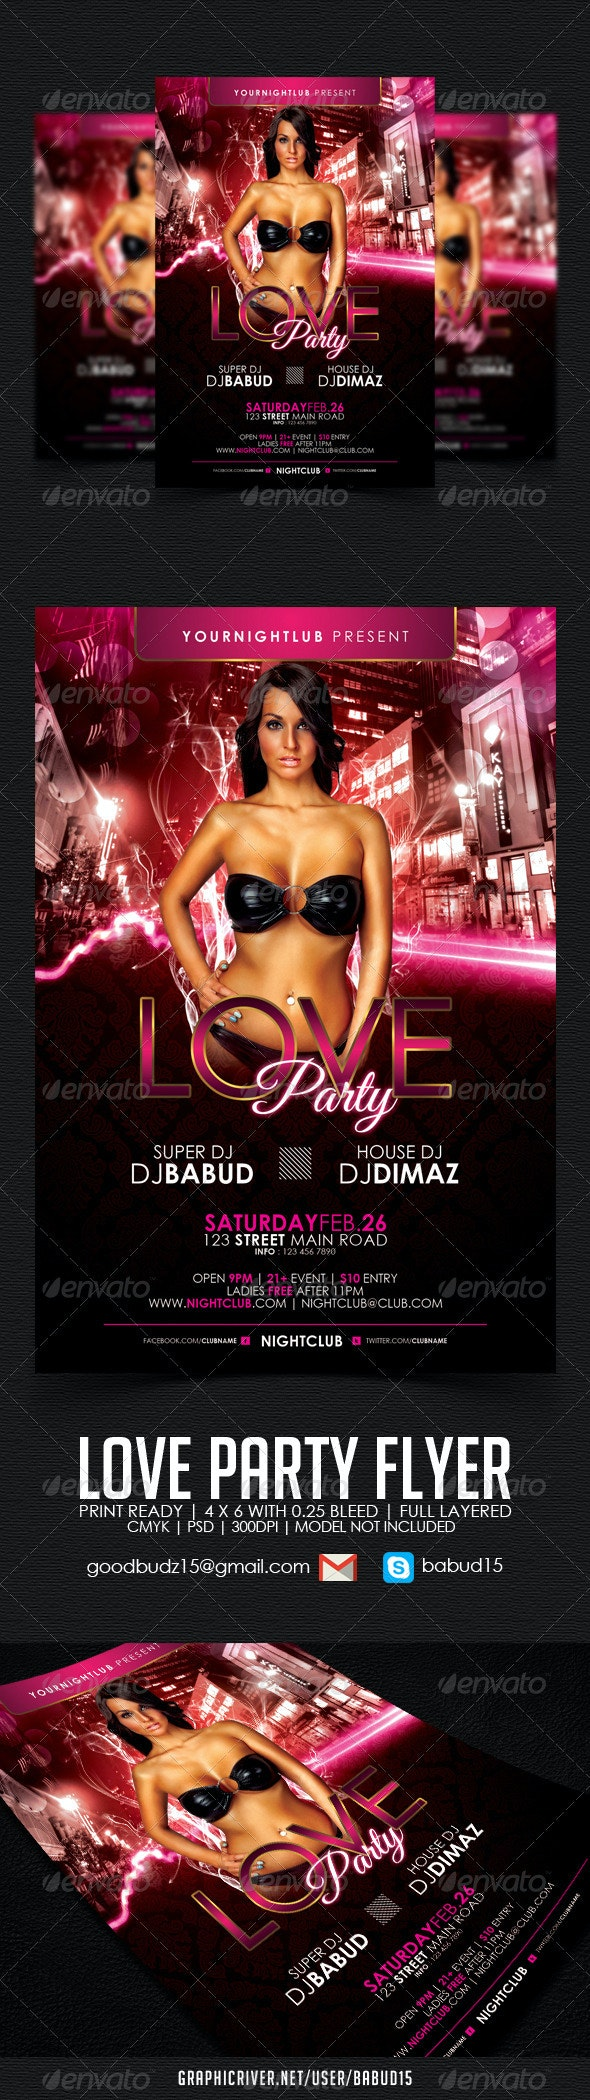 Love Party Flyer Template - Events Flyers